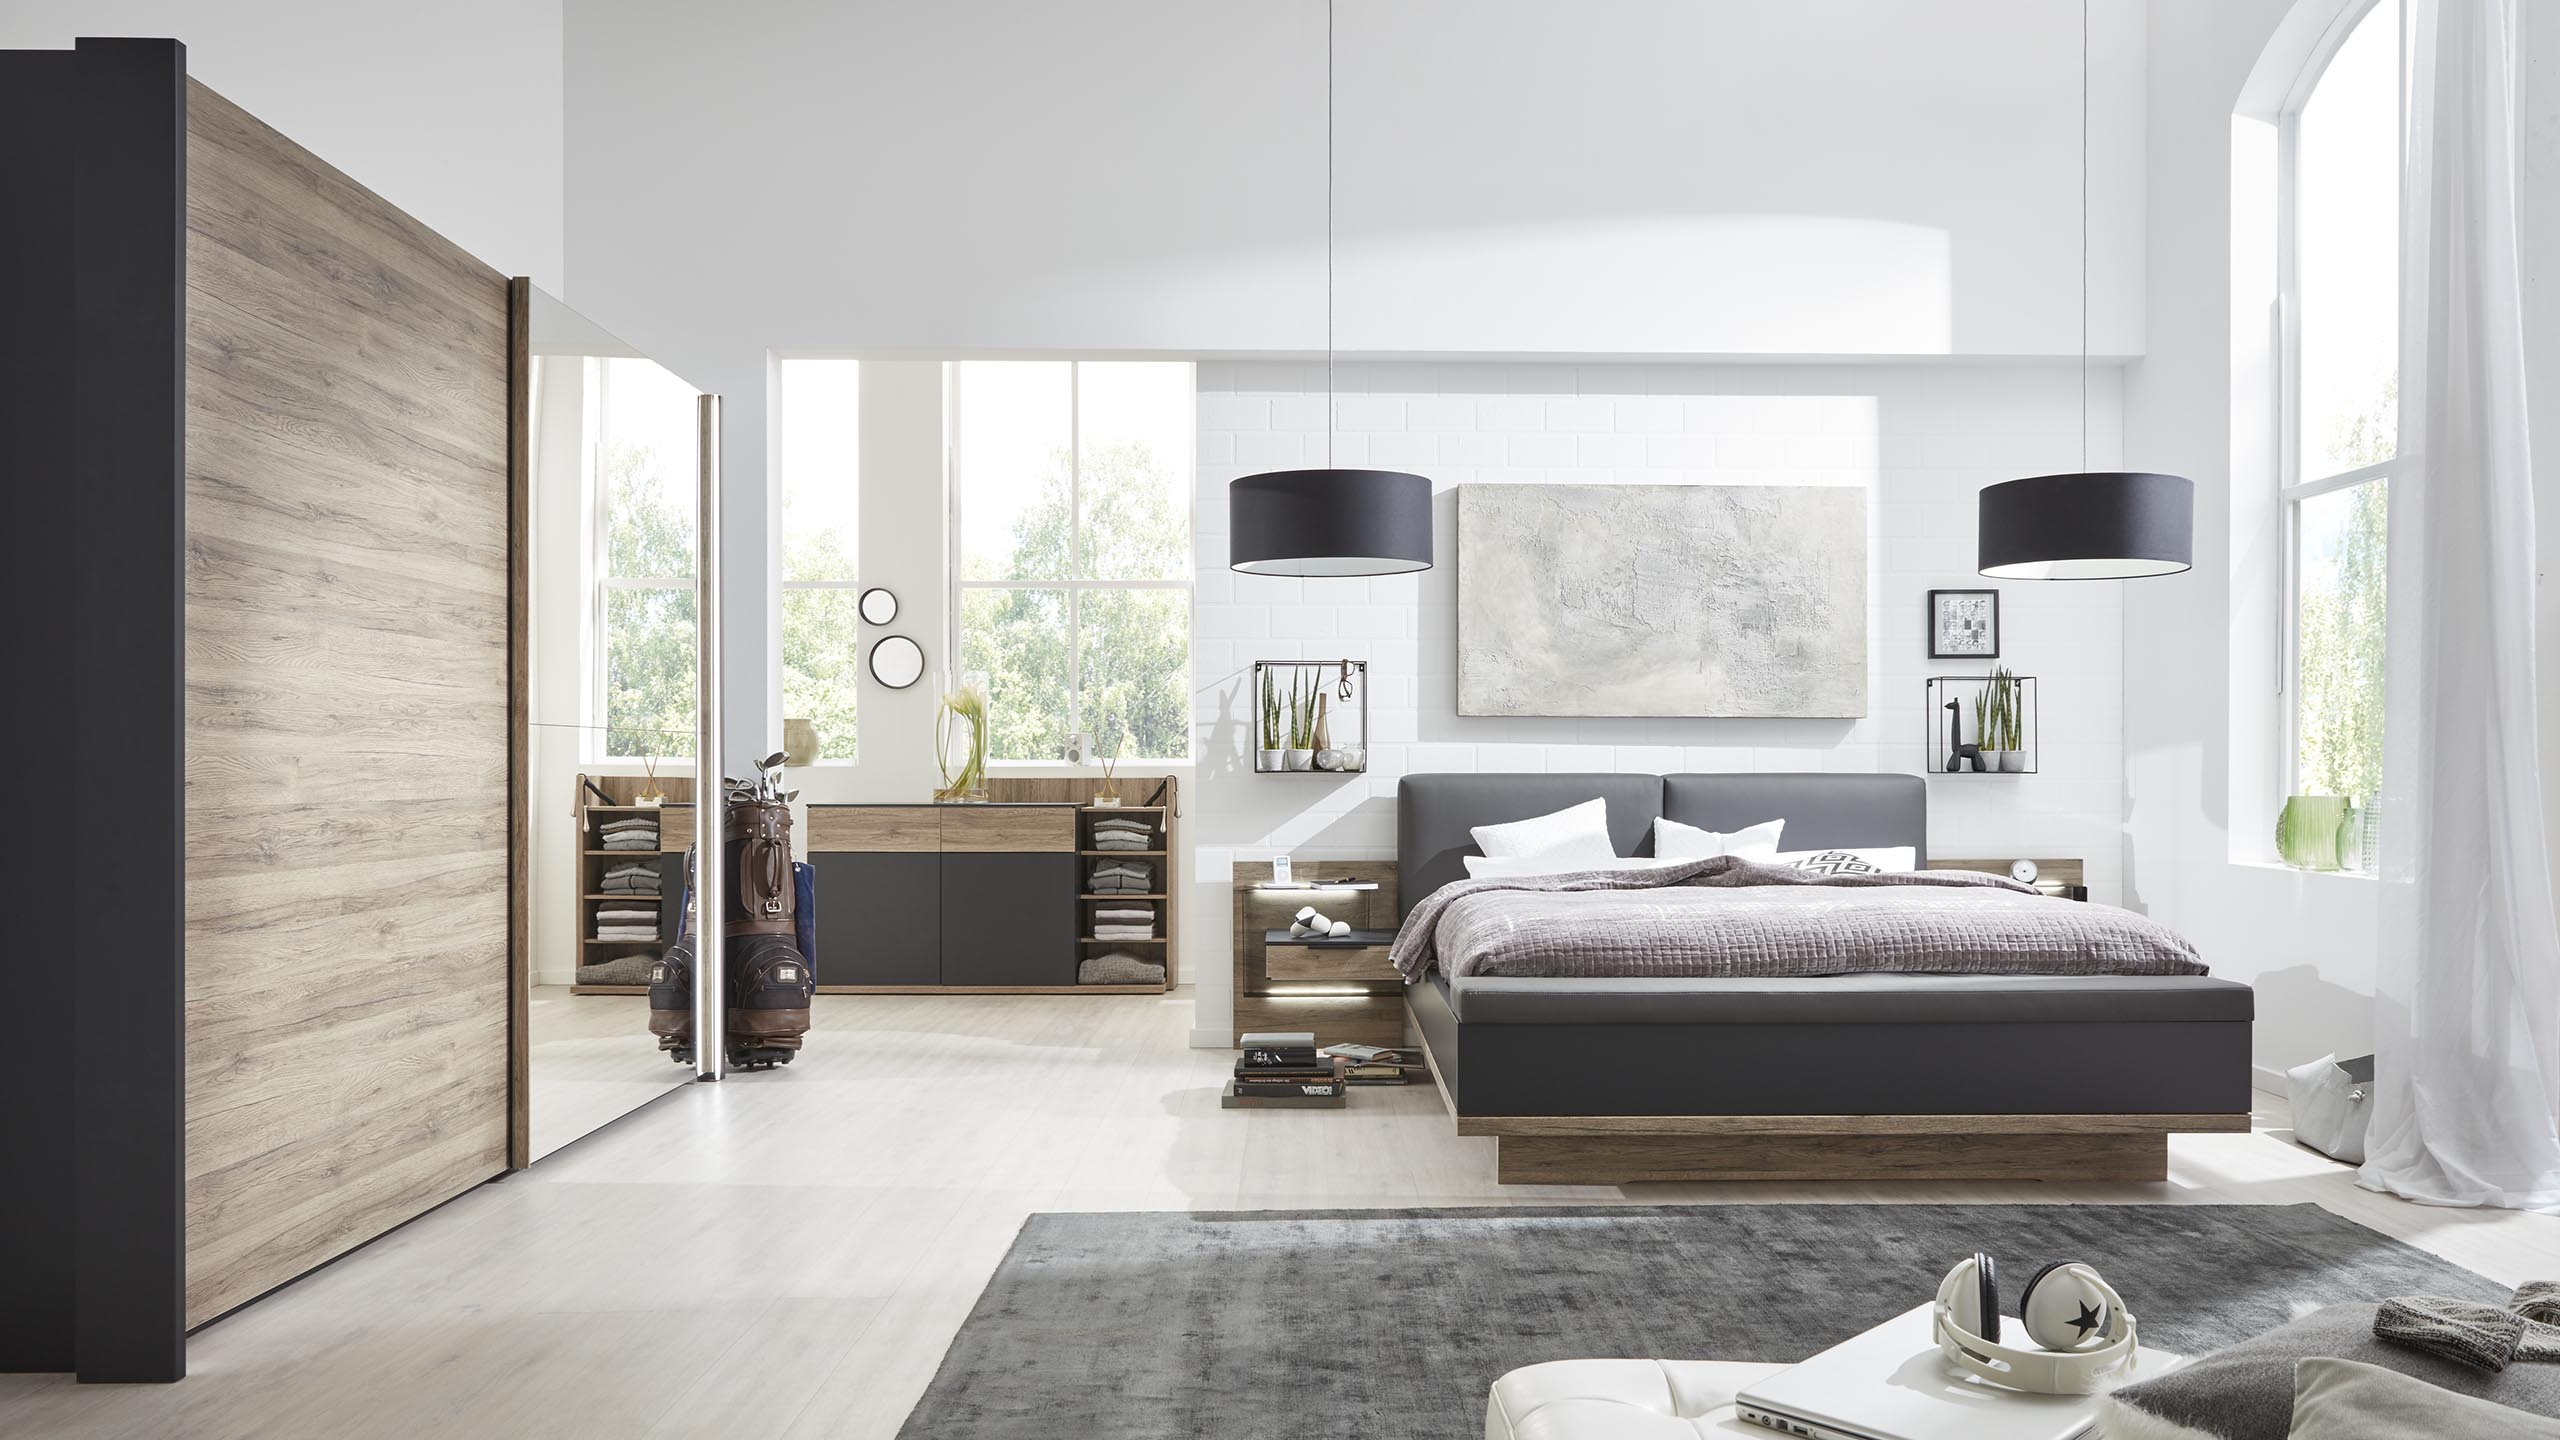 schlafzimmer archive interliving m bel f r mich gemacht. Black Bedroom Furniture Sets. Home Design Ideas